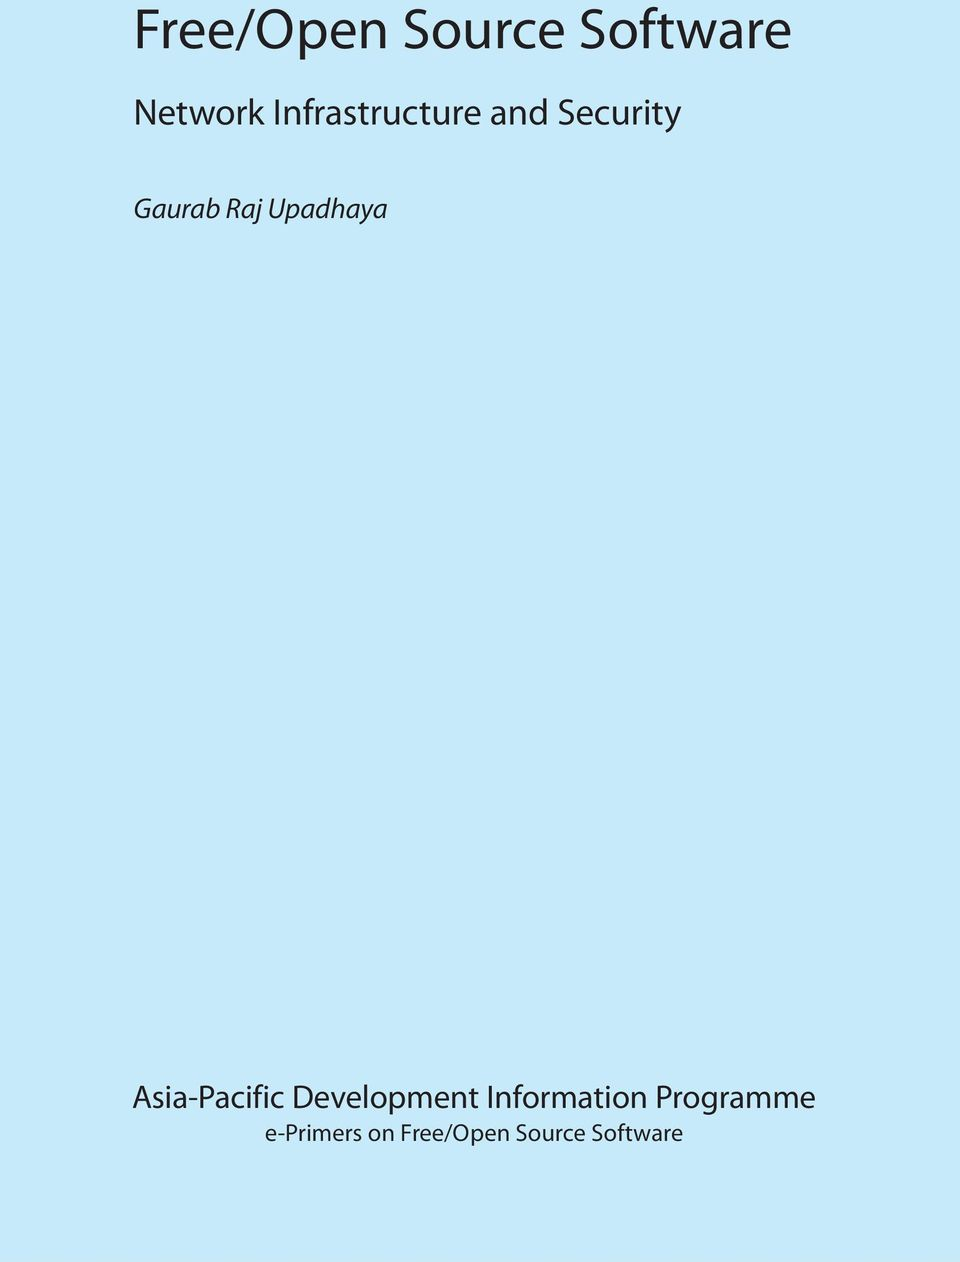 Upadhaya Asia-Pacific Development